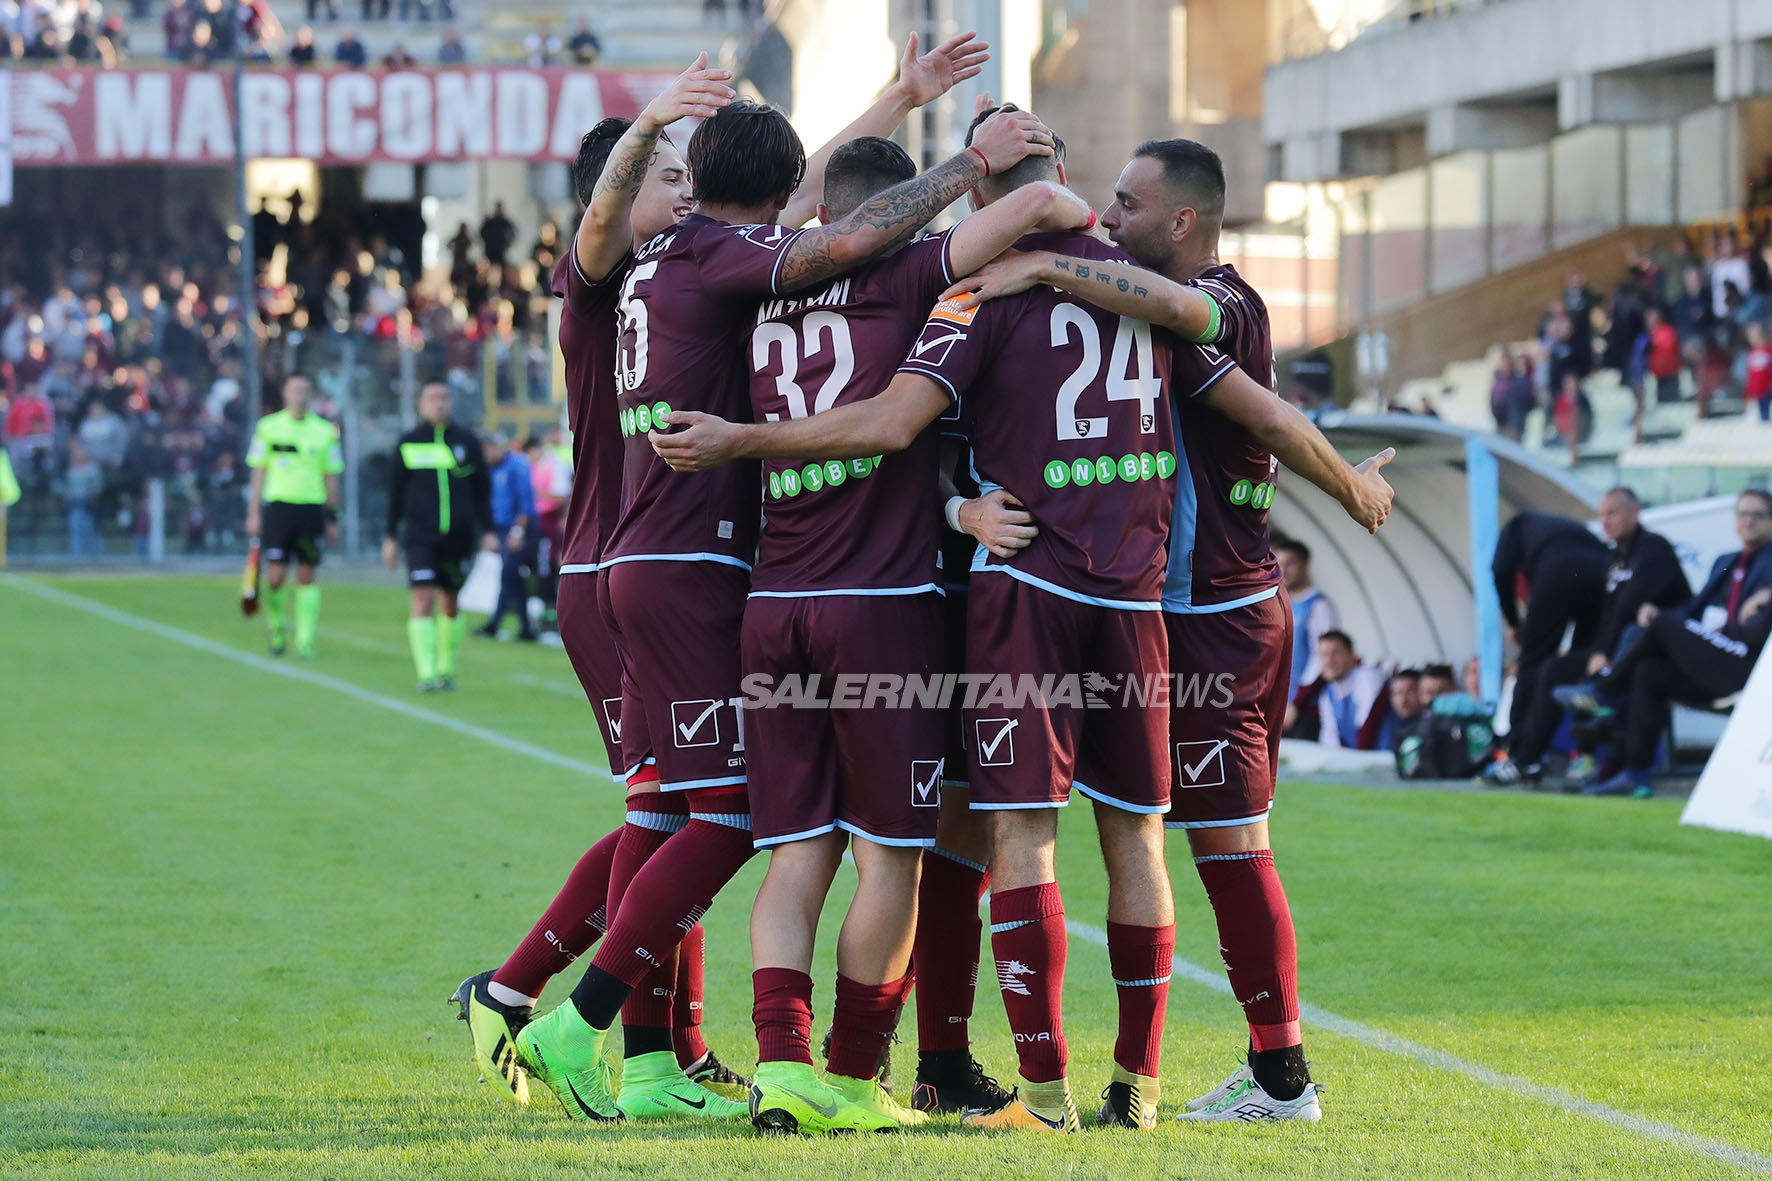 Salernitana Spezia